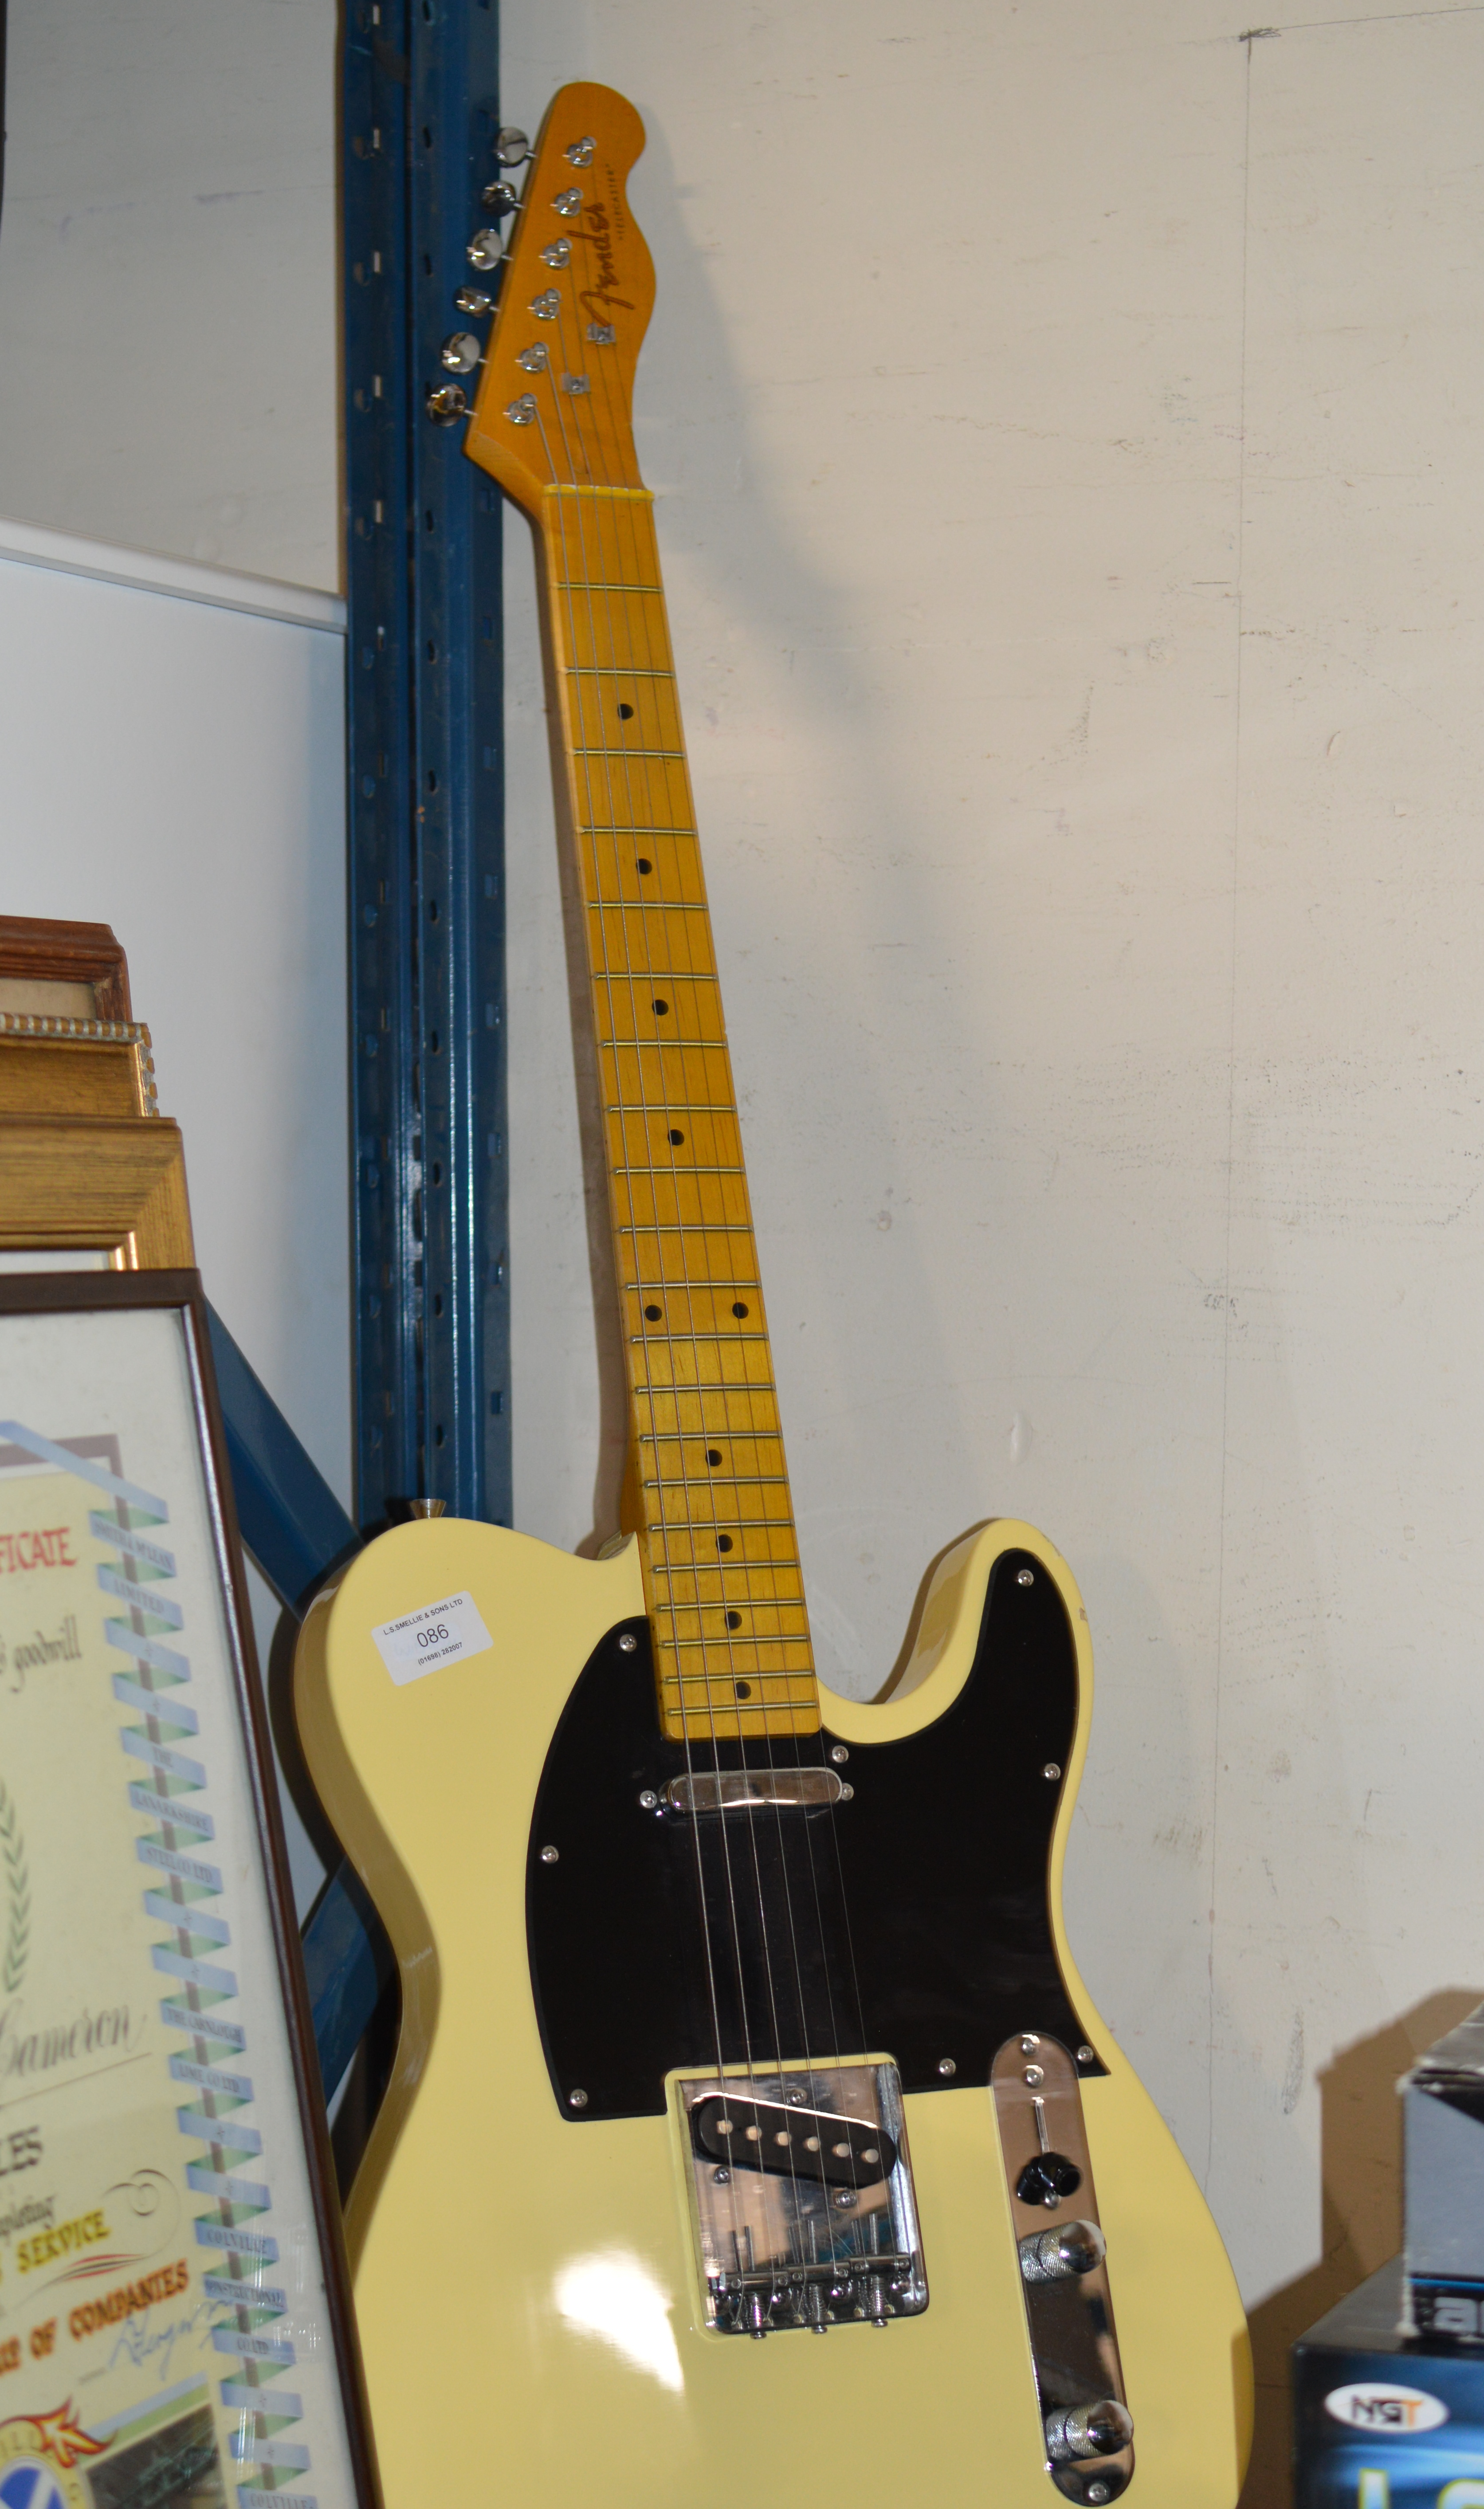 REPRODUCTION ELECTRIC GUITAR MARKED FENDER TELECASTER